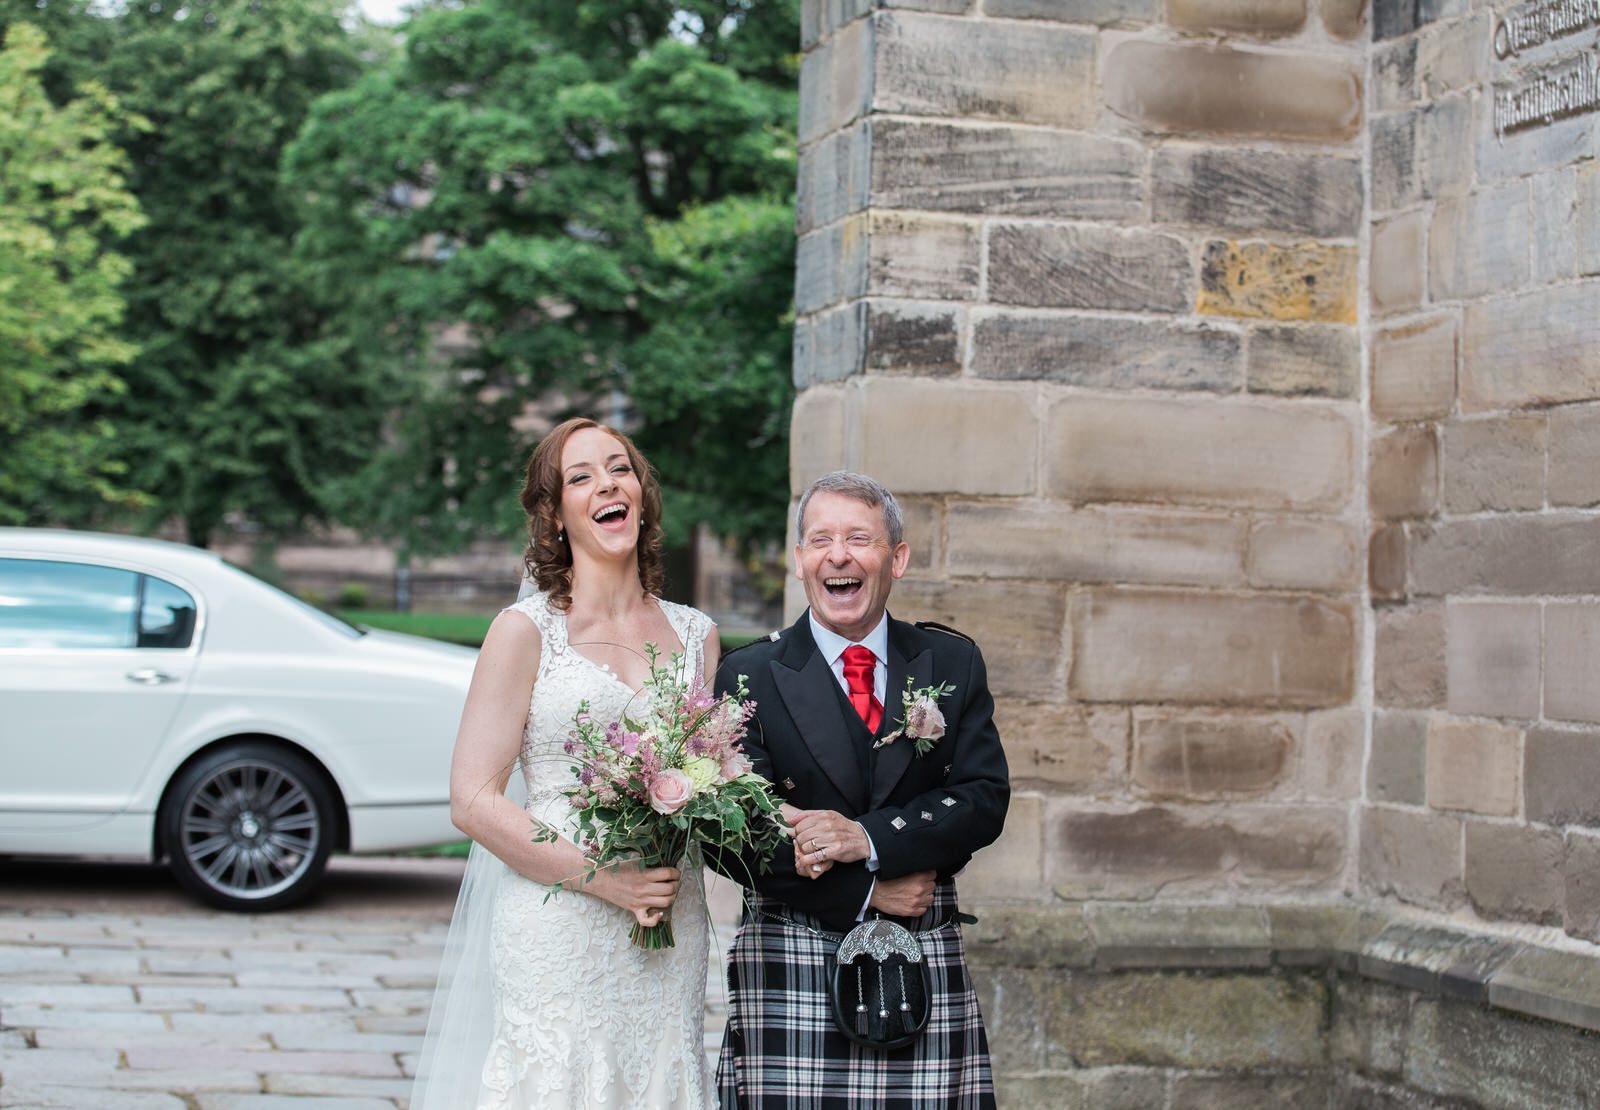 wedding photographers in Aberdeen, wedding photography Aberdeen, wedding photographers Aberdeen